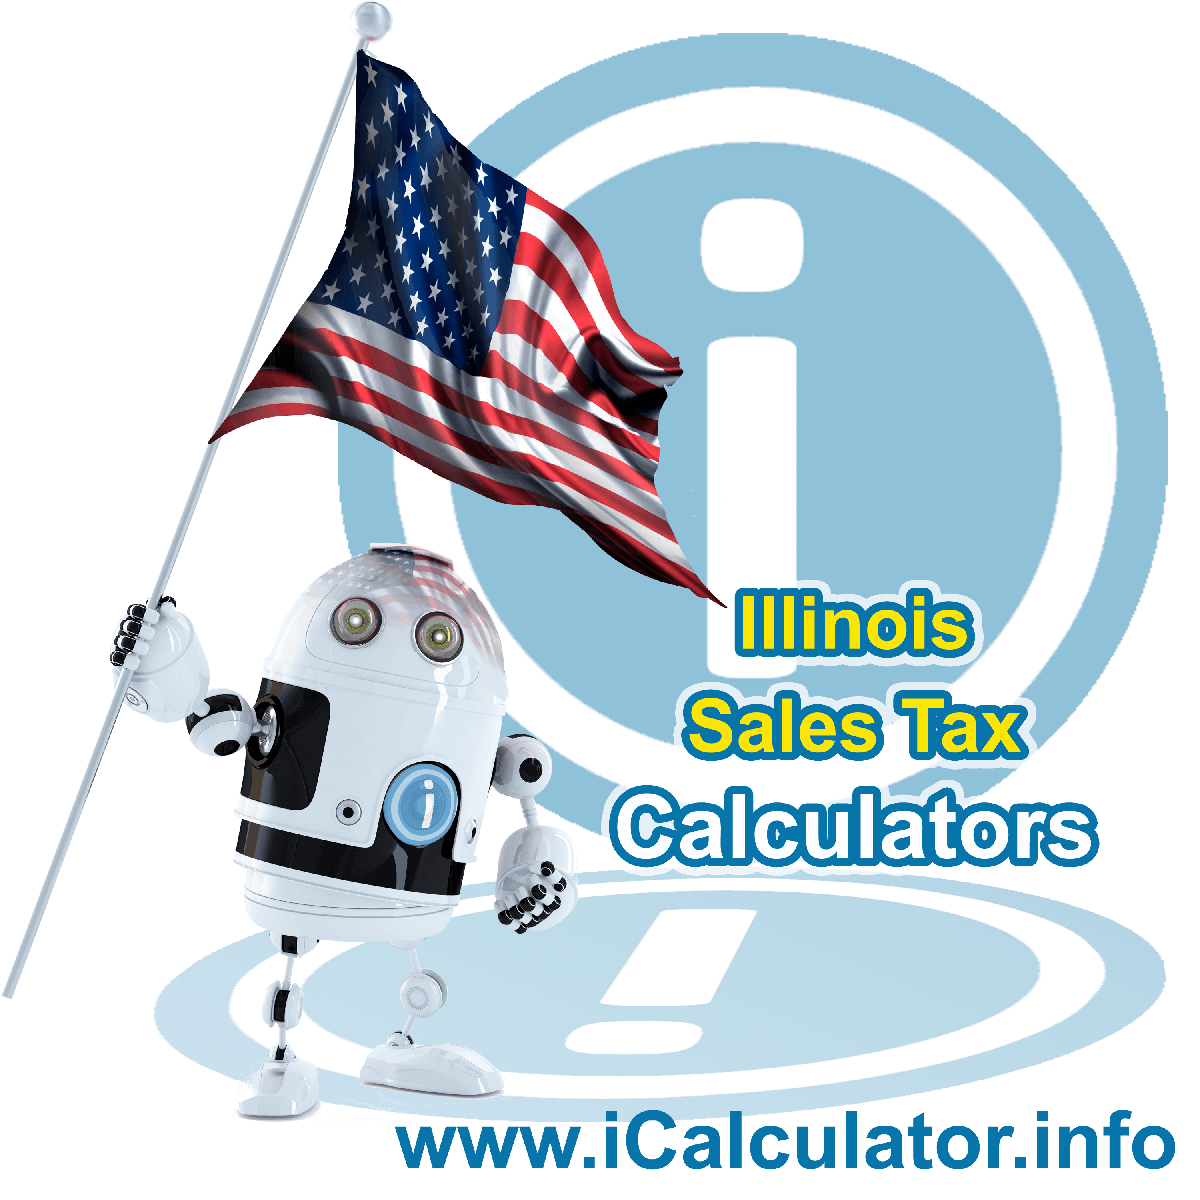 Pesotum Sales Rates: This image illustrates a calculator robot calculating Pesotum sales tax manually using the Pesotum Sales Tax Formula. You can use this information to calculate Pesotum Sales Tax manually or use the Pesotum Sales Tax Calculator to calculate sales tax online.